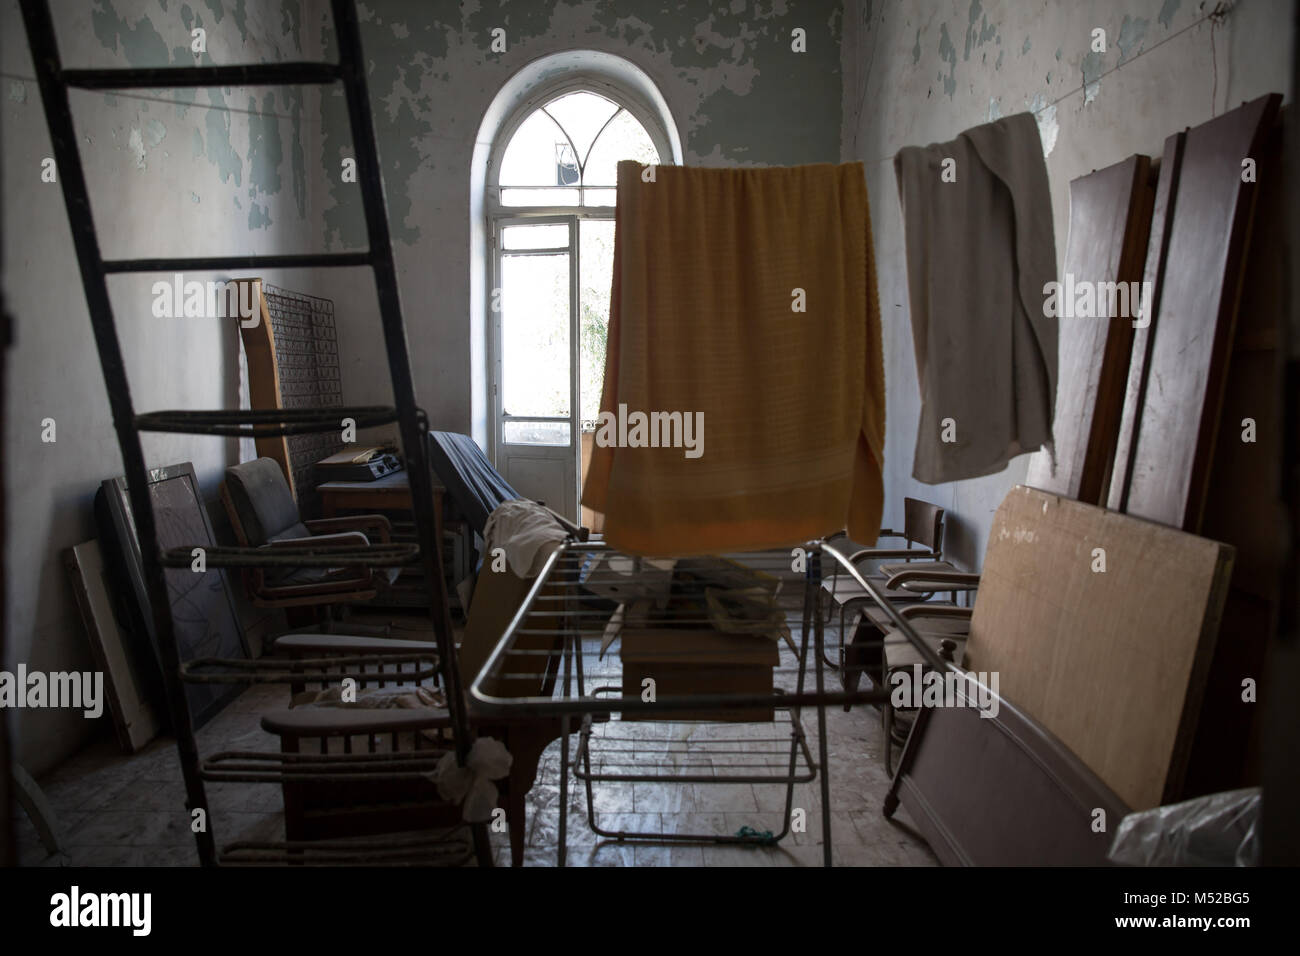 Washing hung out in a room upstairs in the Baron Hotel, which sheltered families during the fighting in Aleppo. - Stock Image